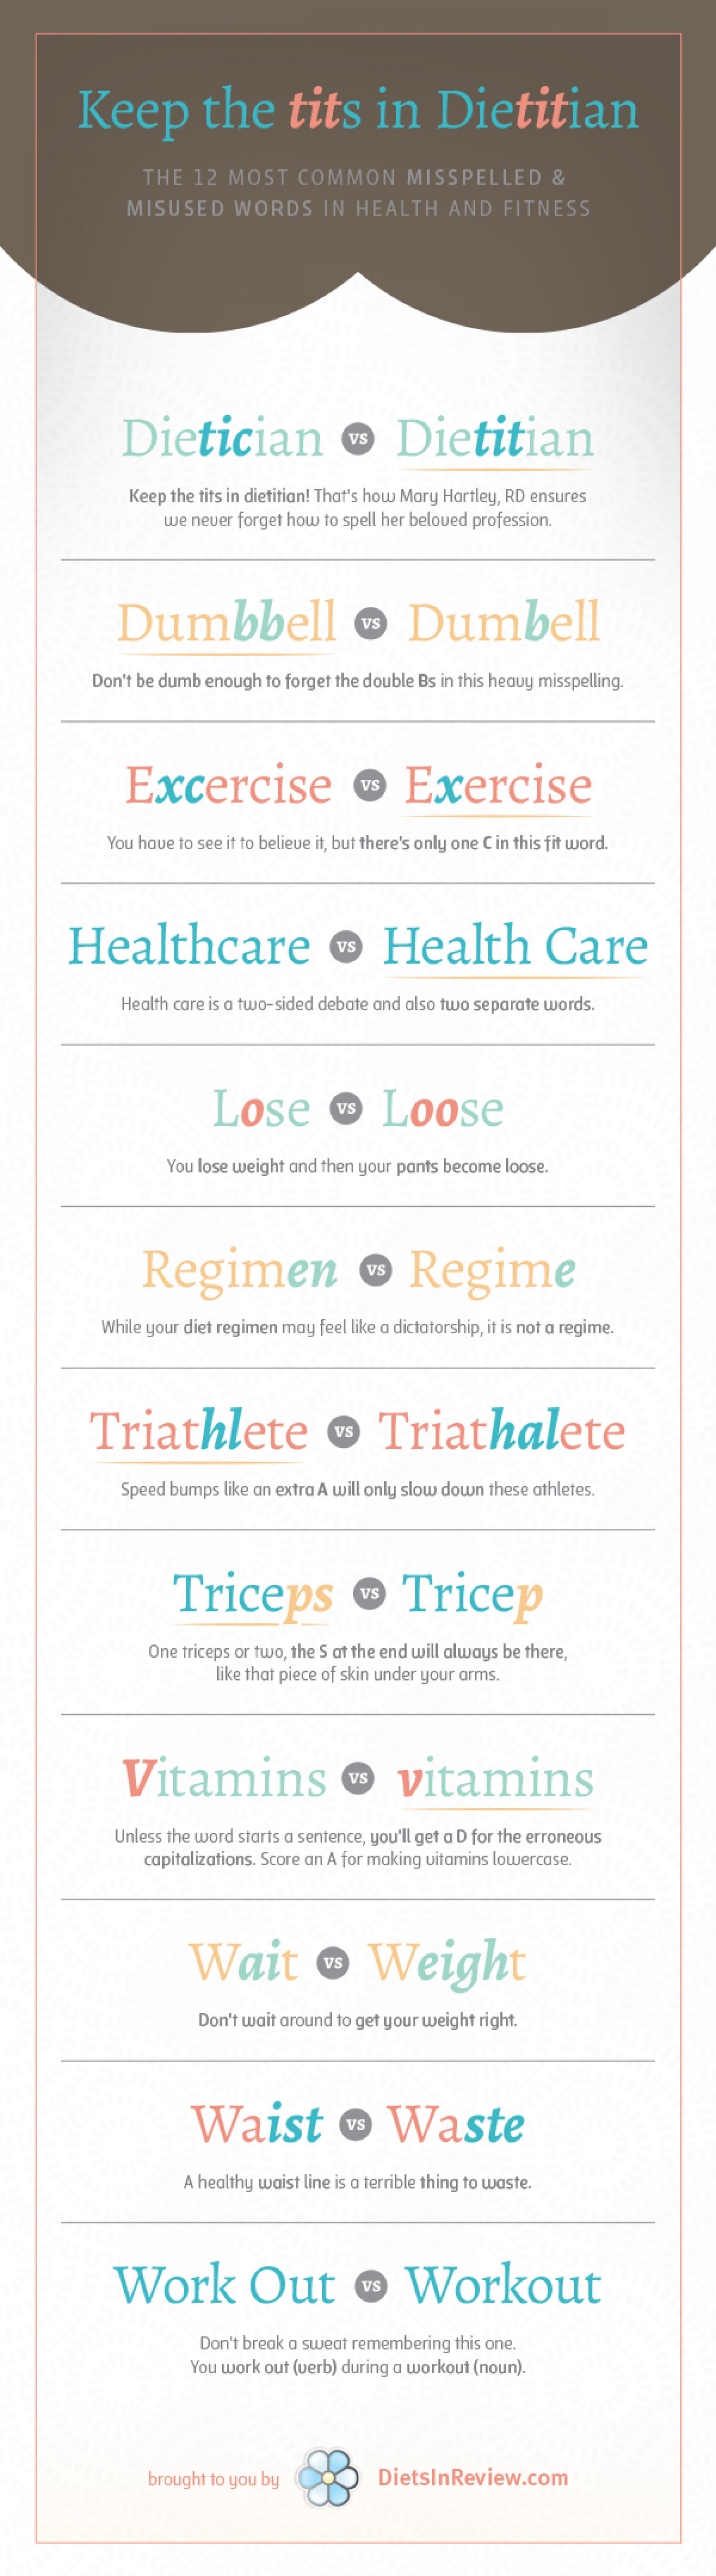 Keep the Tits in Dietitian! 12 Common Misspellings in Health and Fitness Infographic